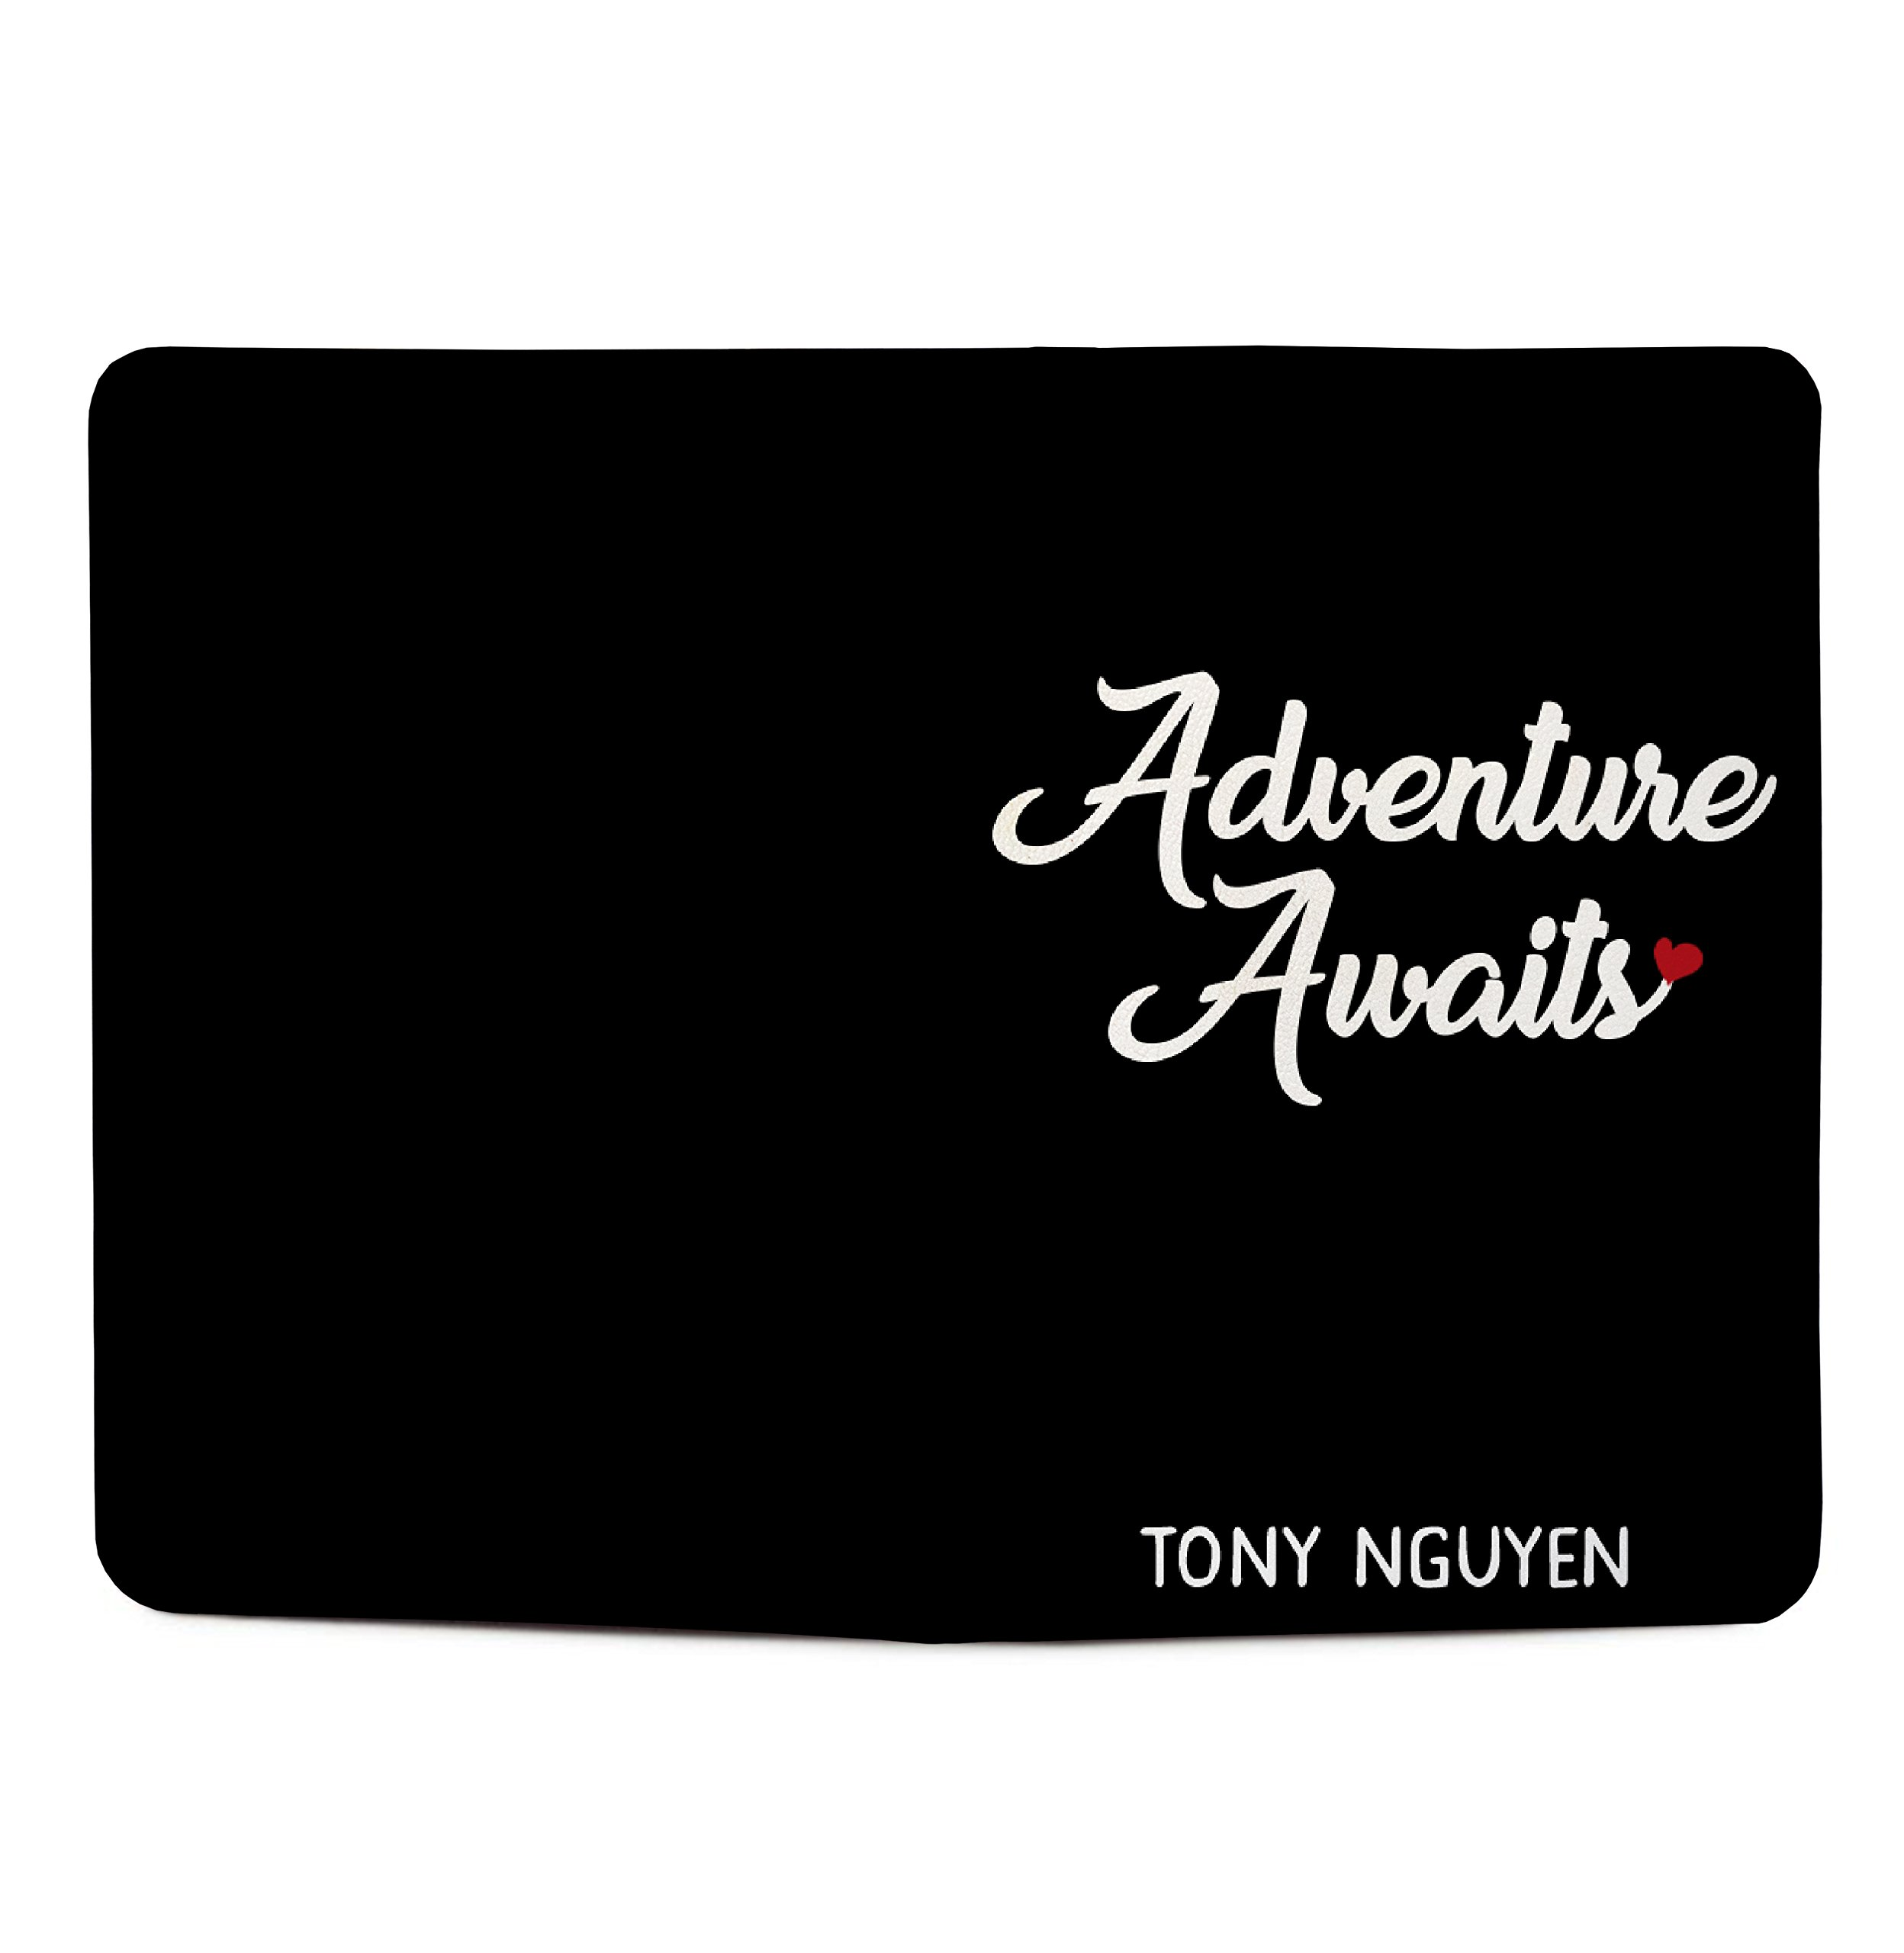 Adventure Awaits - Couple Passport Holder Personalized Passport Cover Set of 2 by With Love From Julie (Image #3)